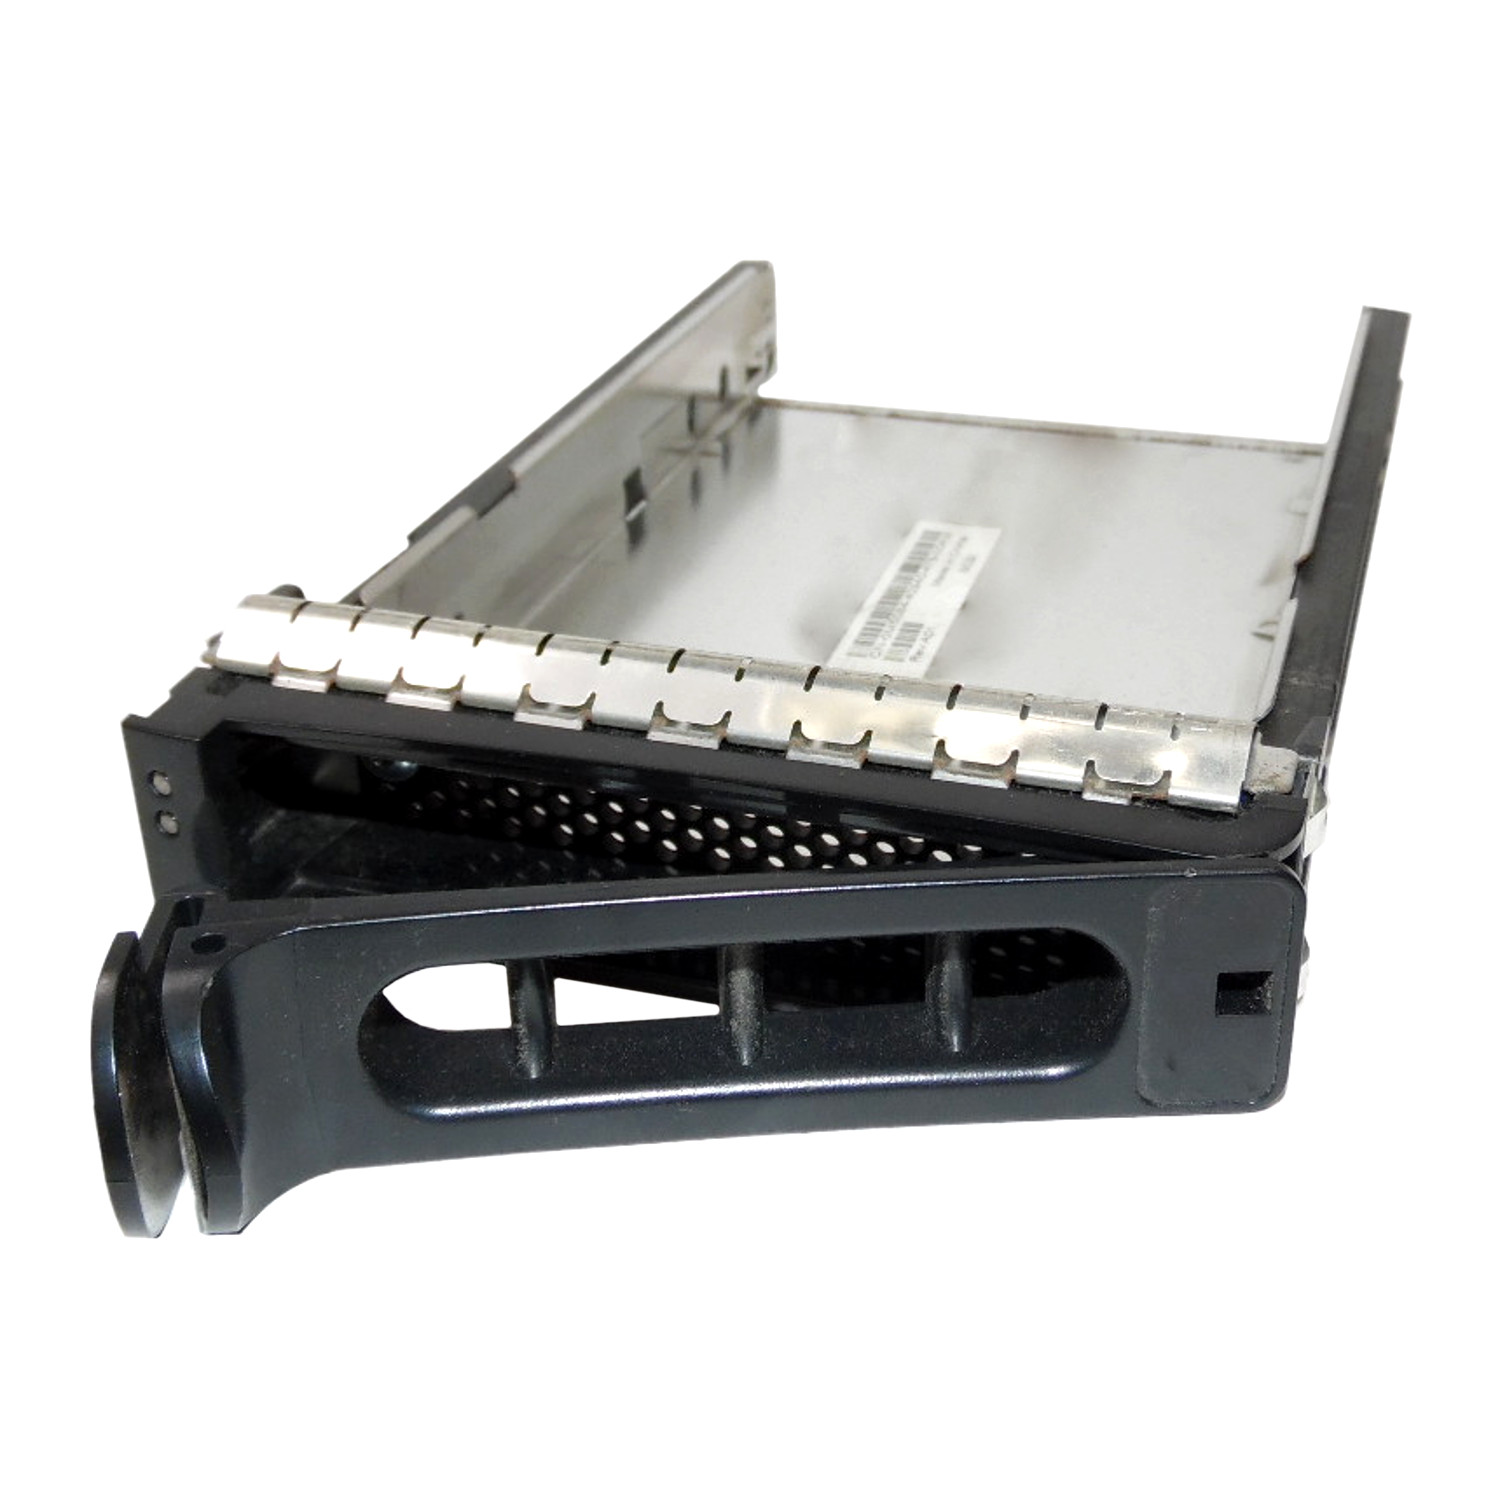 G2526 Dell PowerEdge 2650 2850 SCSI Hot Swappable Drive Tray